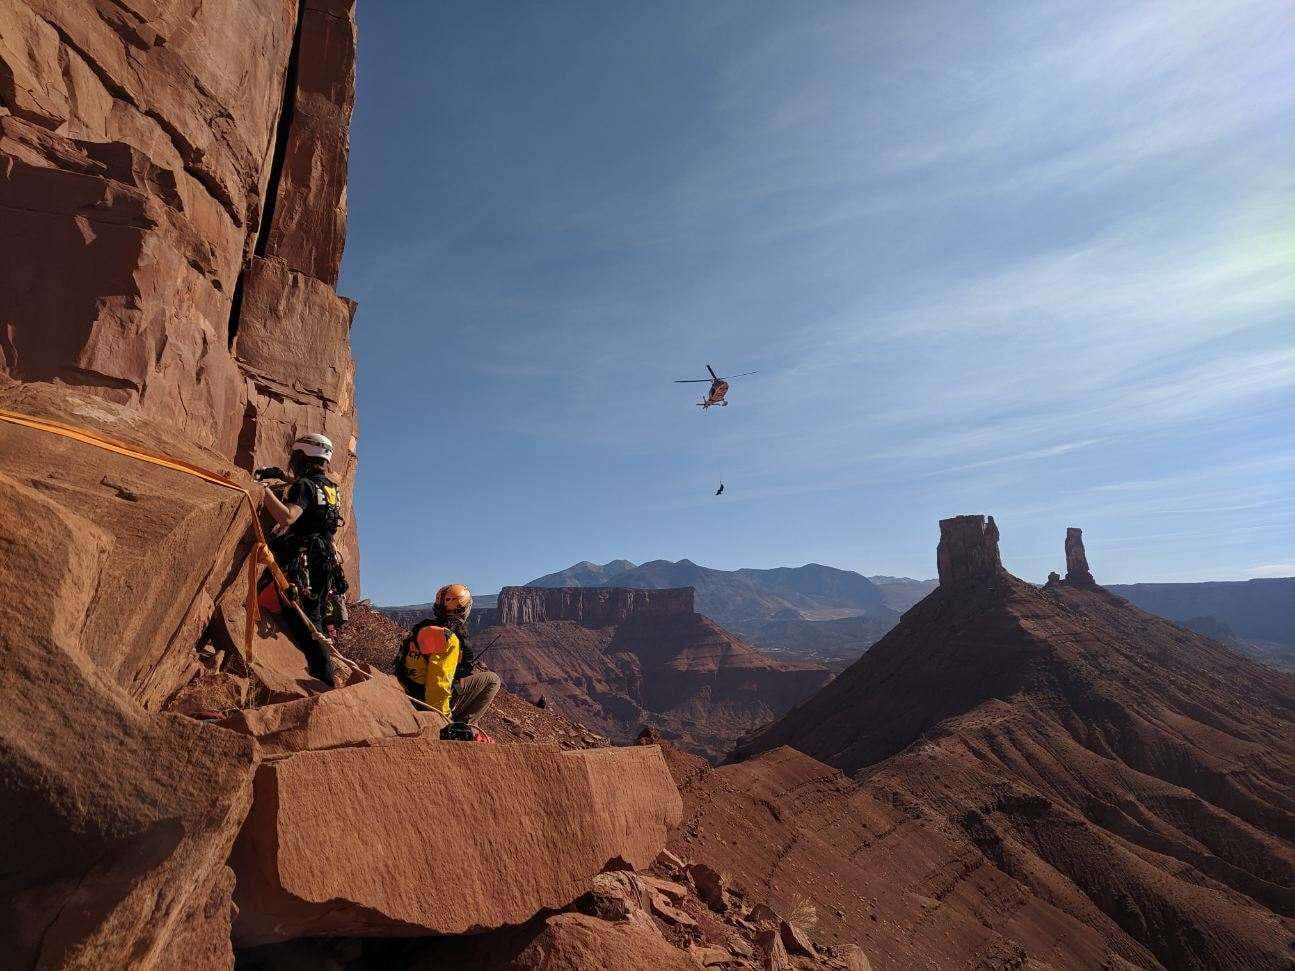 Photos: SAR teams rescue injured rock climbers twice in two days from same spot nearMoab